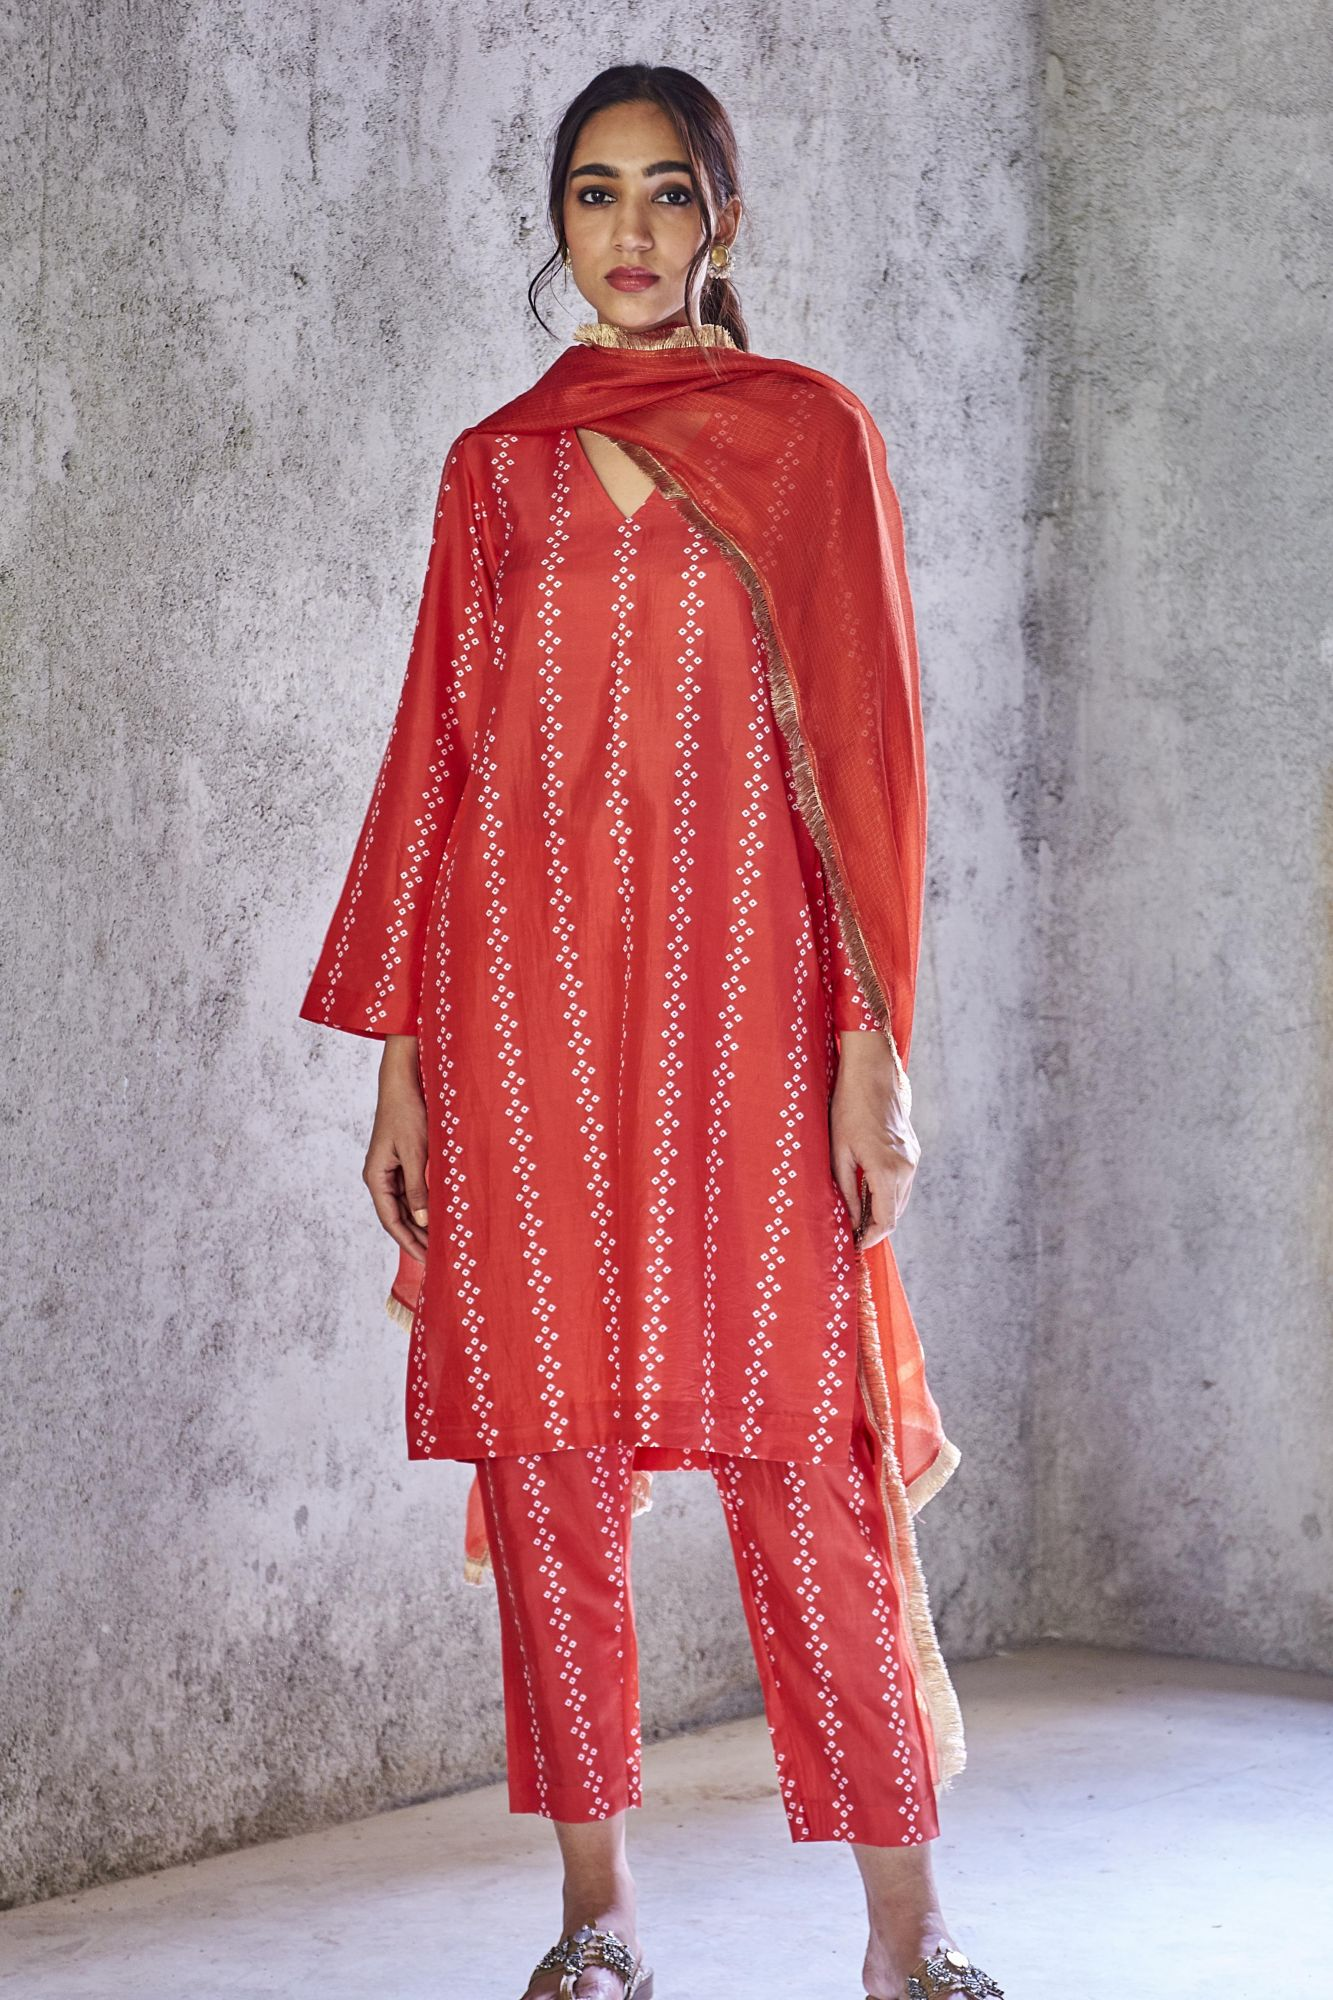 Bhavya Kurta And Pants Coord Set With Gold Fringe Dupatta